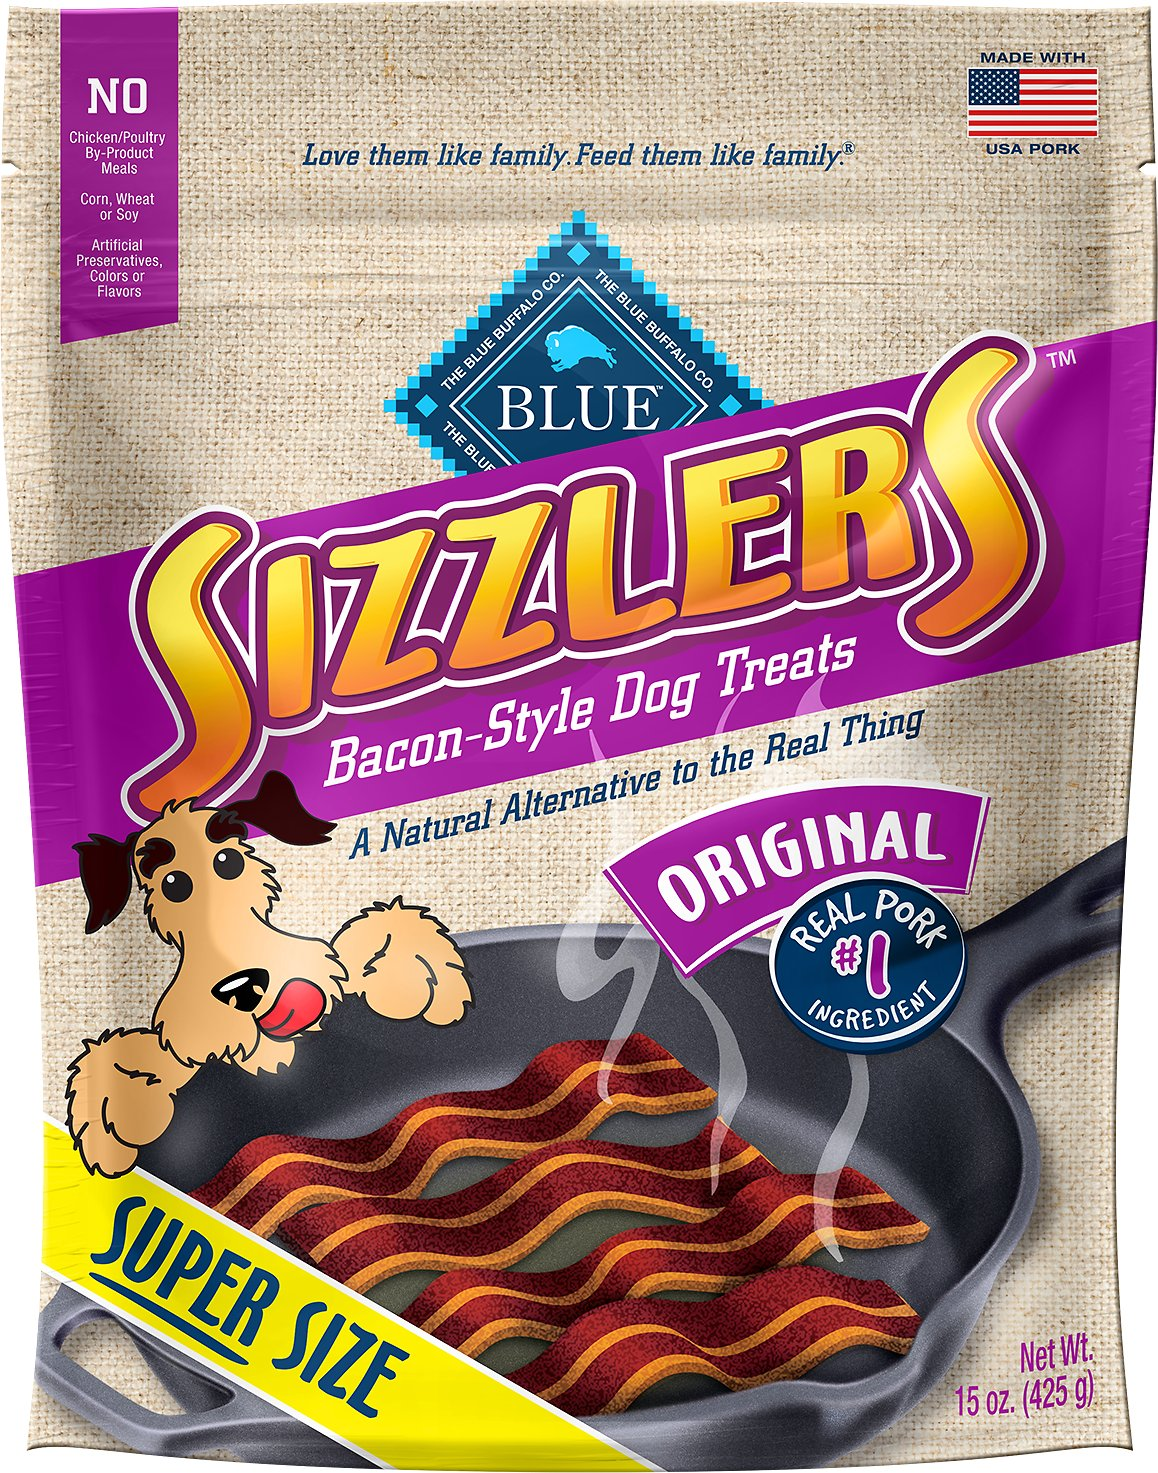 Blue Buffalo Sizzlers with Real Pork Bacon-Style Dog Treats Image